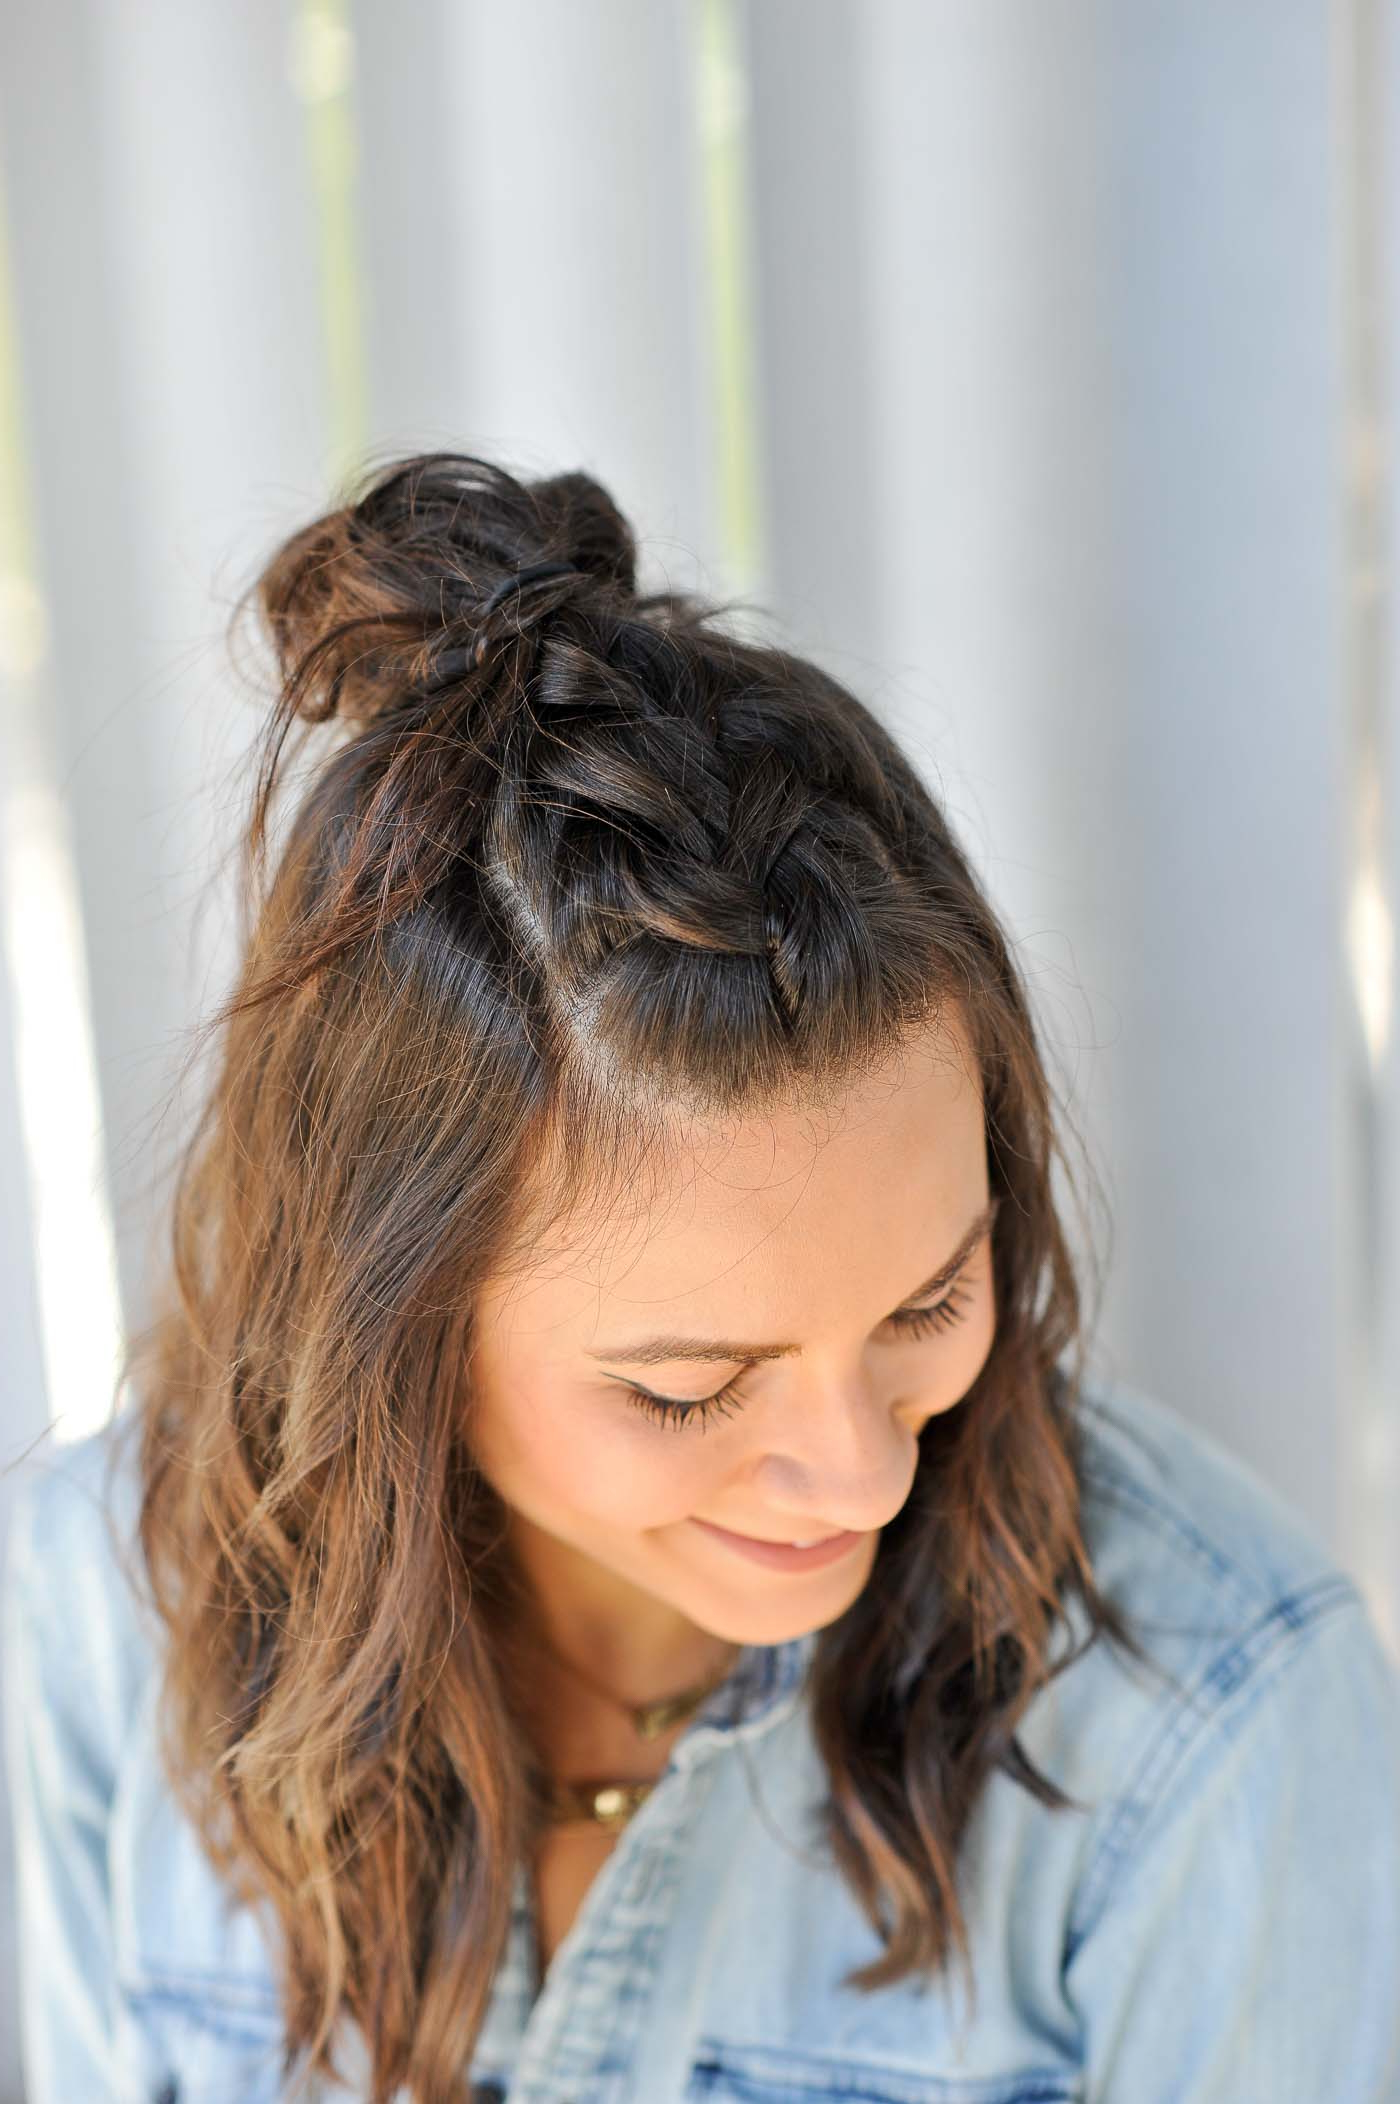 My Style Vita Pertaining To Newest Braided Topknot Hairstyles (View 15 of 20)